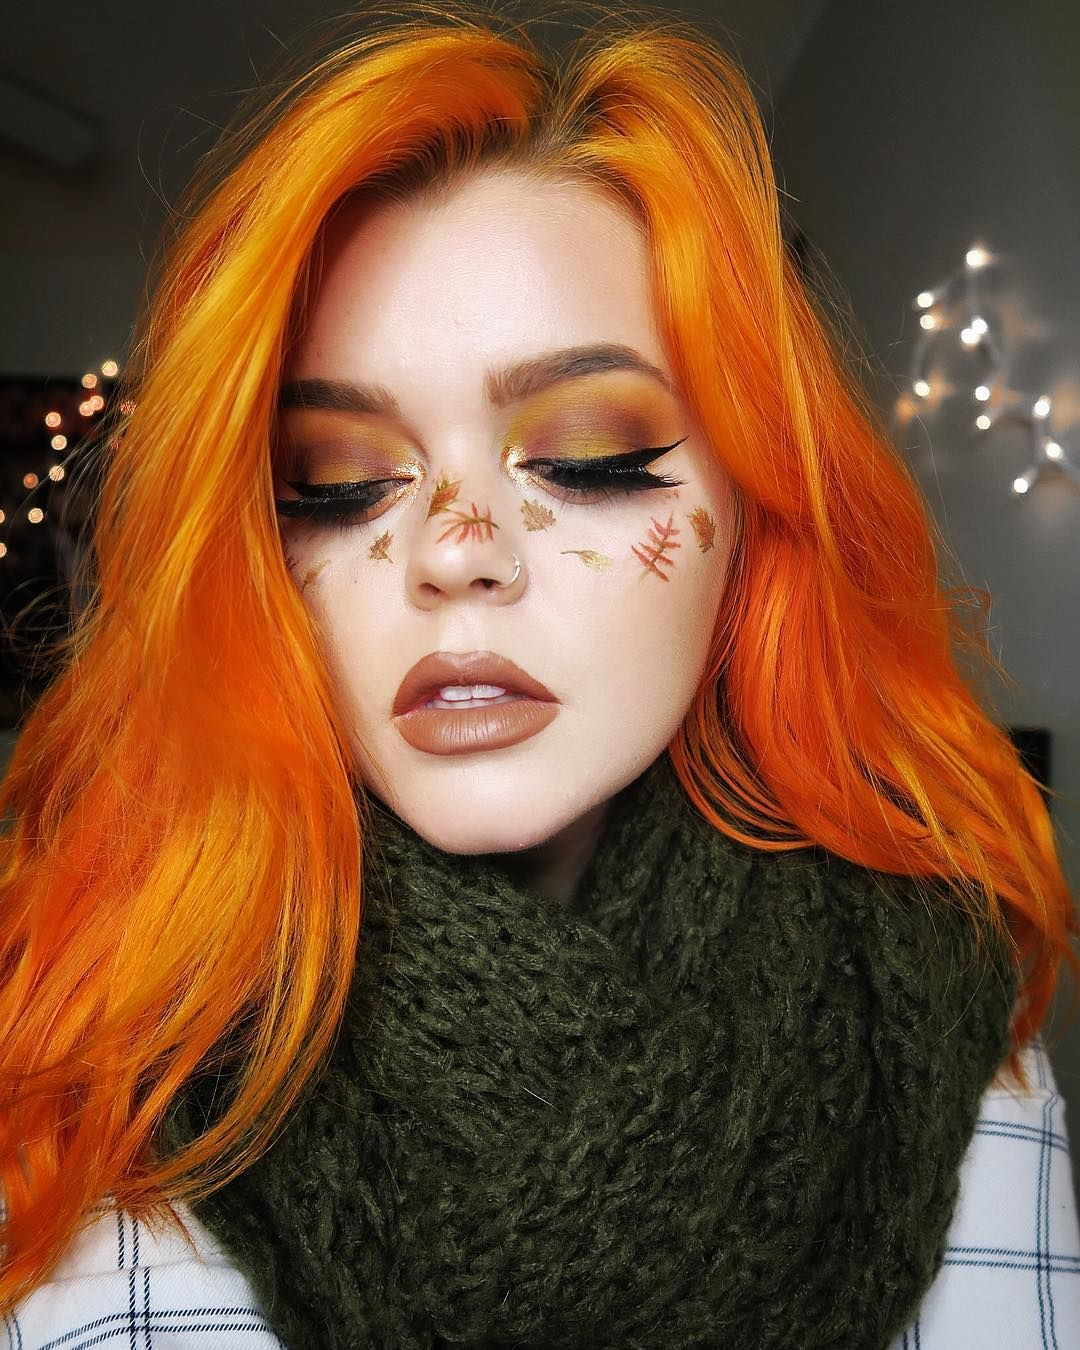 30 More Edgy Hair Color Ideas Worth Trying Edgy Hair Scene Hair Edgy Hair Color